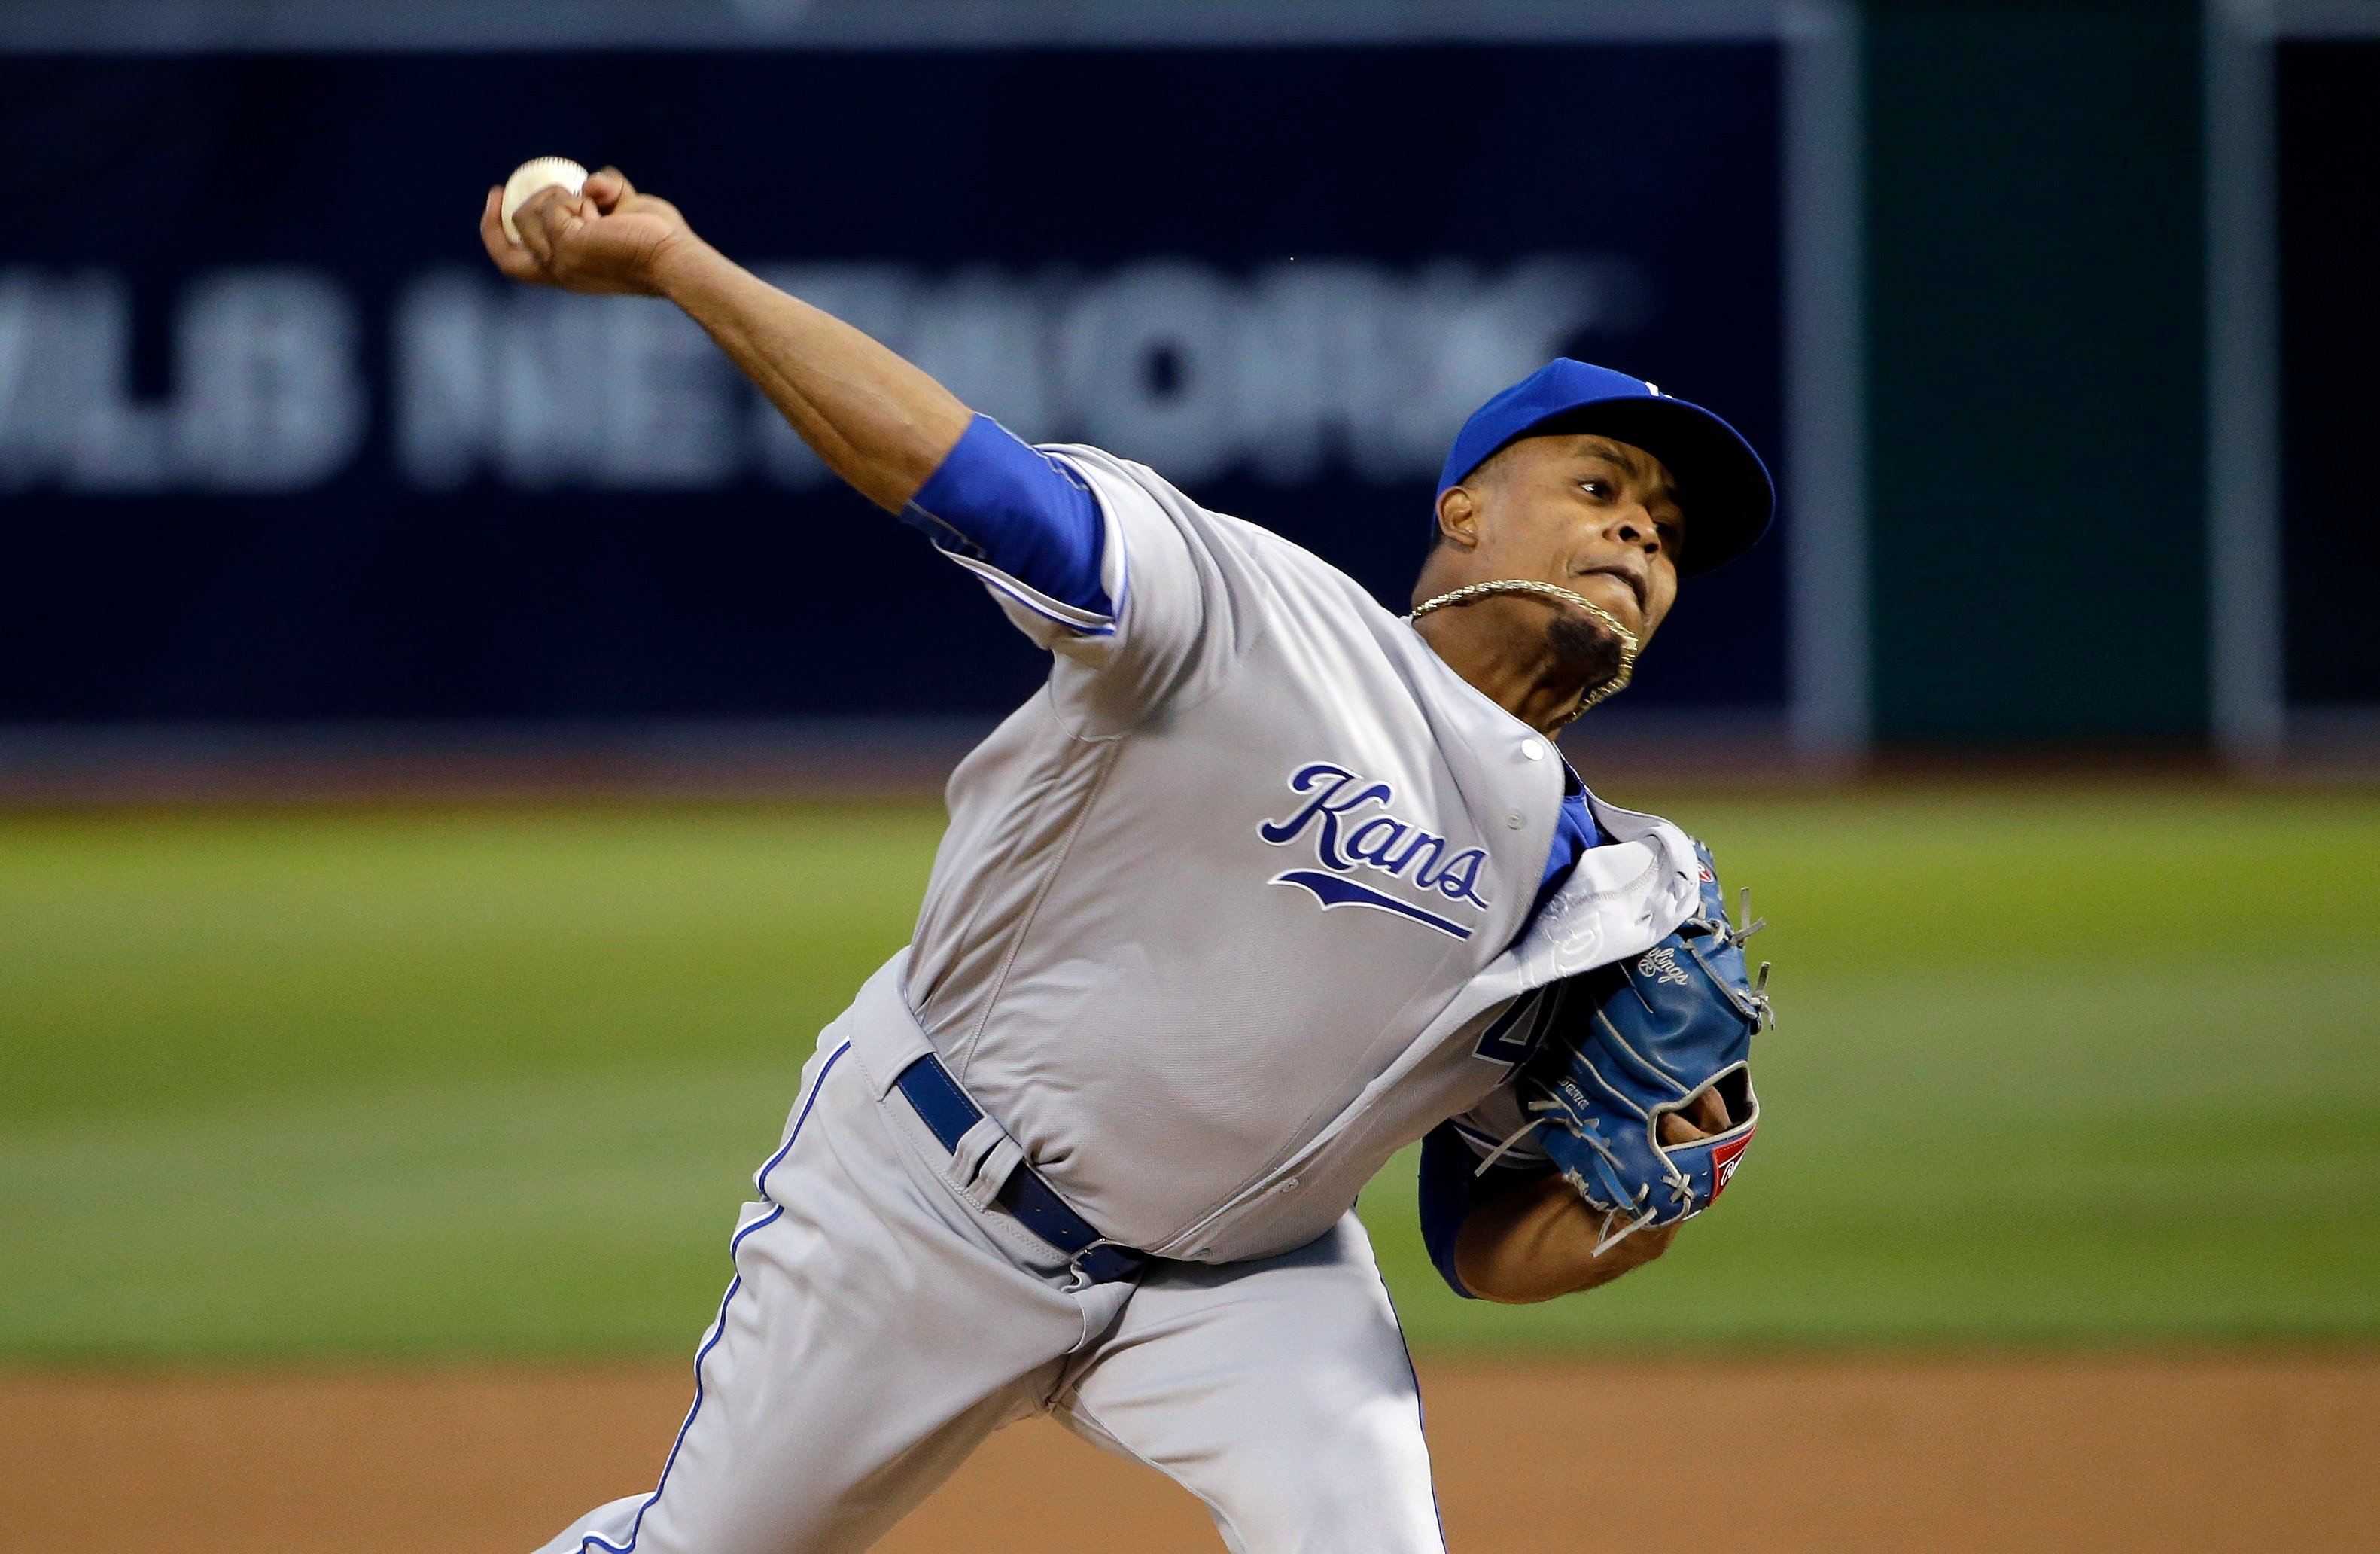 Right-hander Edinson Volquez has finalized a $22 million, two-year contract with the Miami Marlins after passing his physical. (AP)